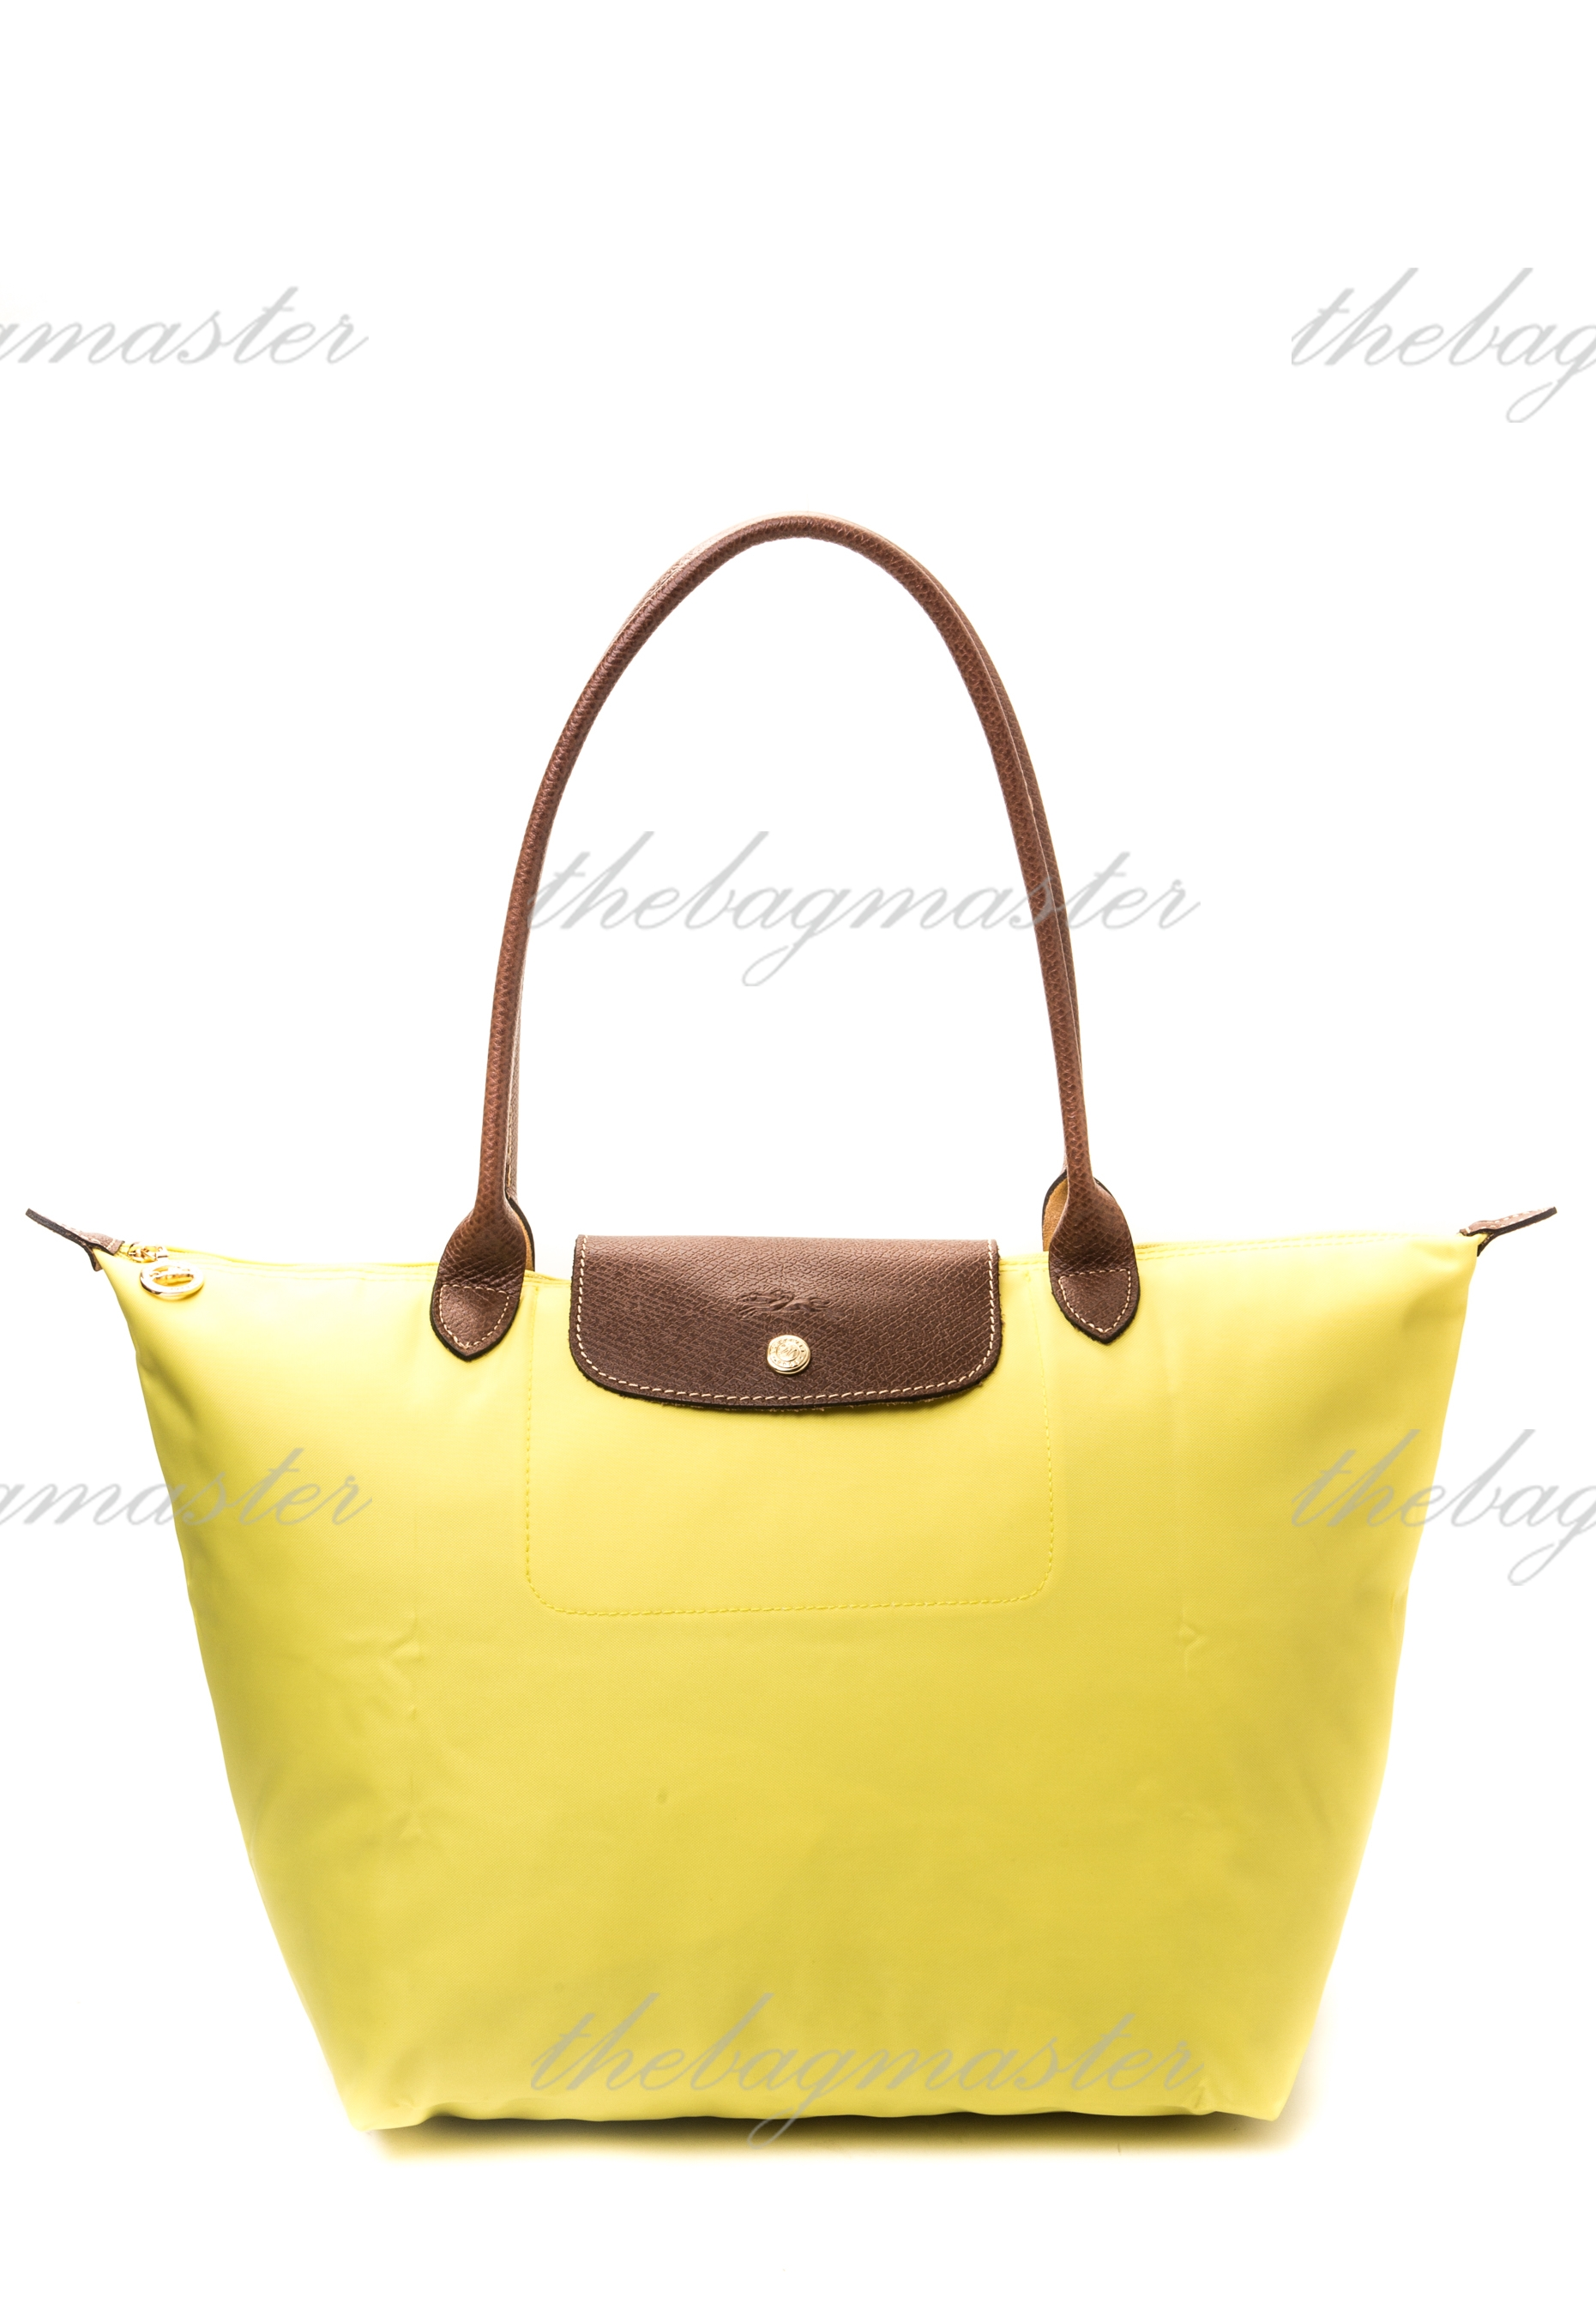 LCneoMSH-9 · LCneoMSH-10 · LCneoMSH-11 · Longchamp Le Pliage Large Long  Handle- Lemon 6c912f7968d07